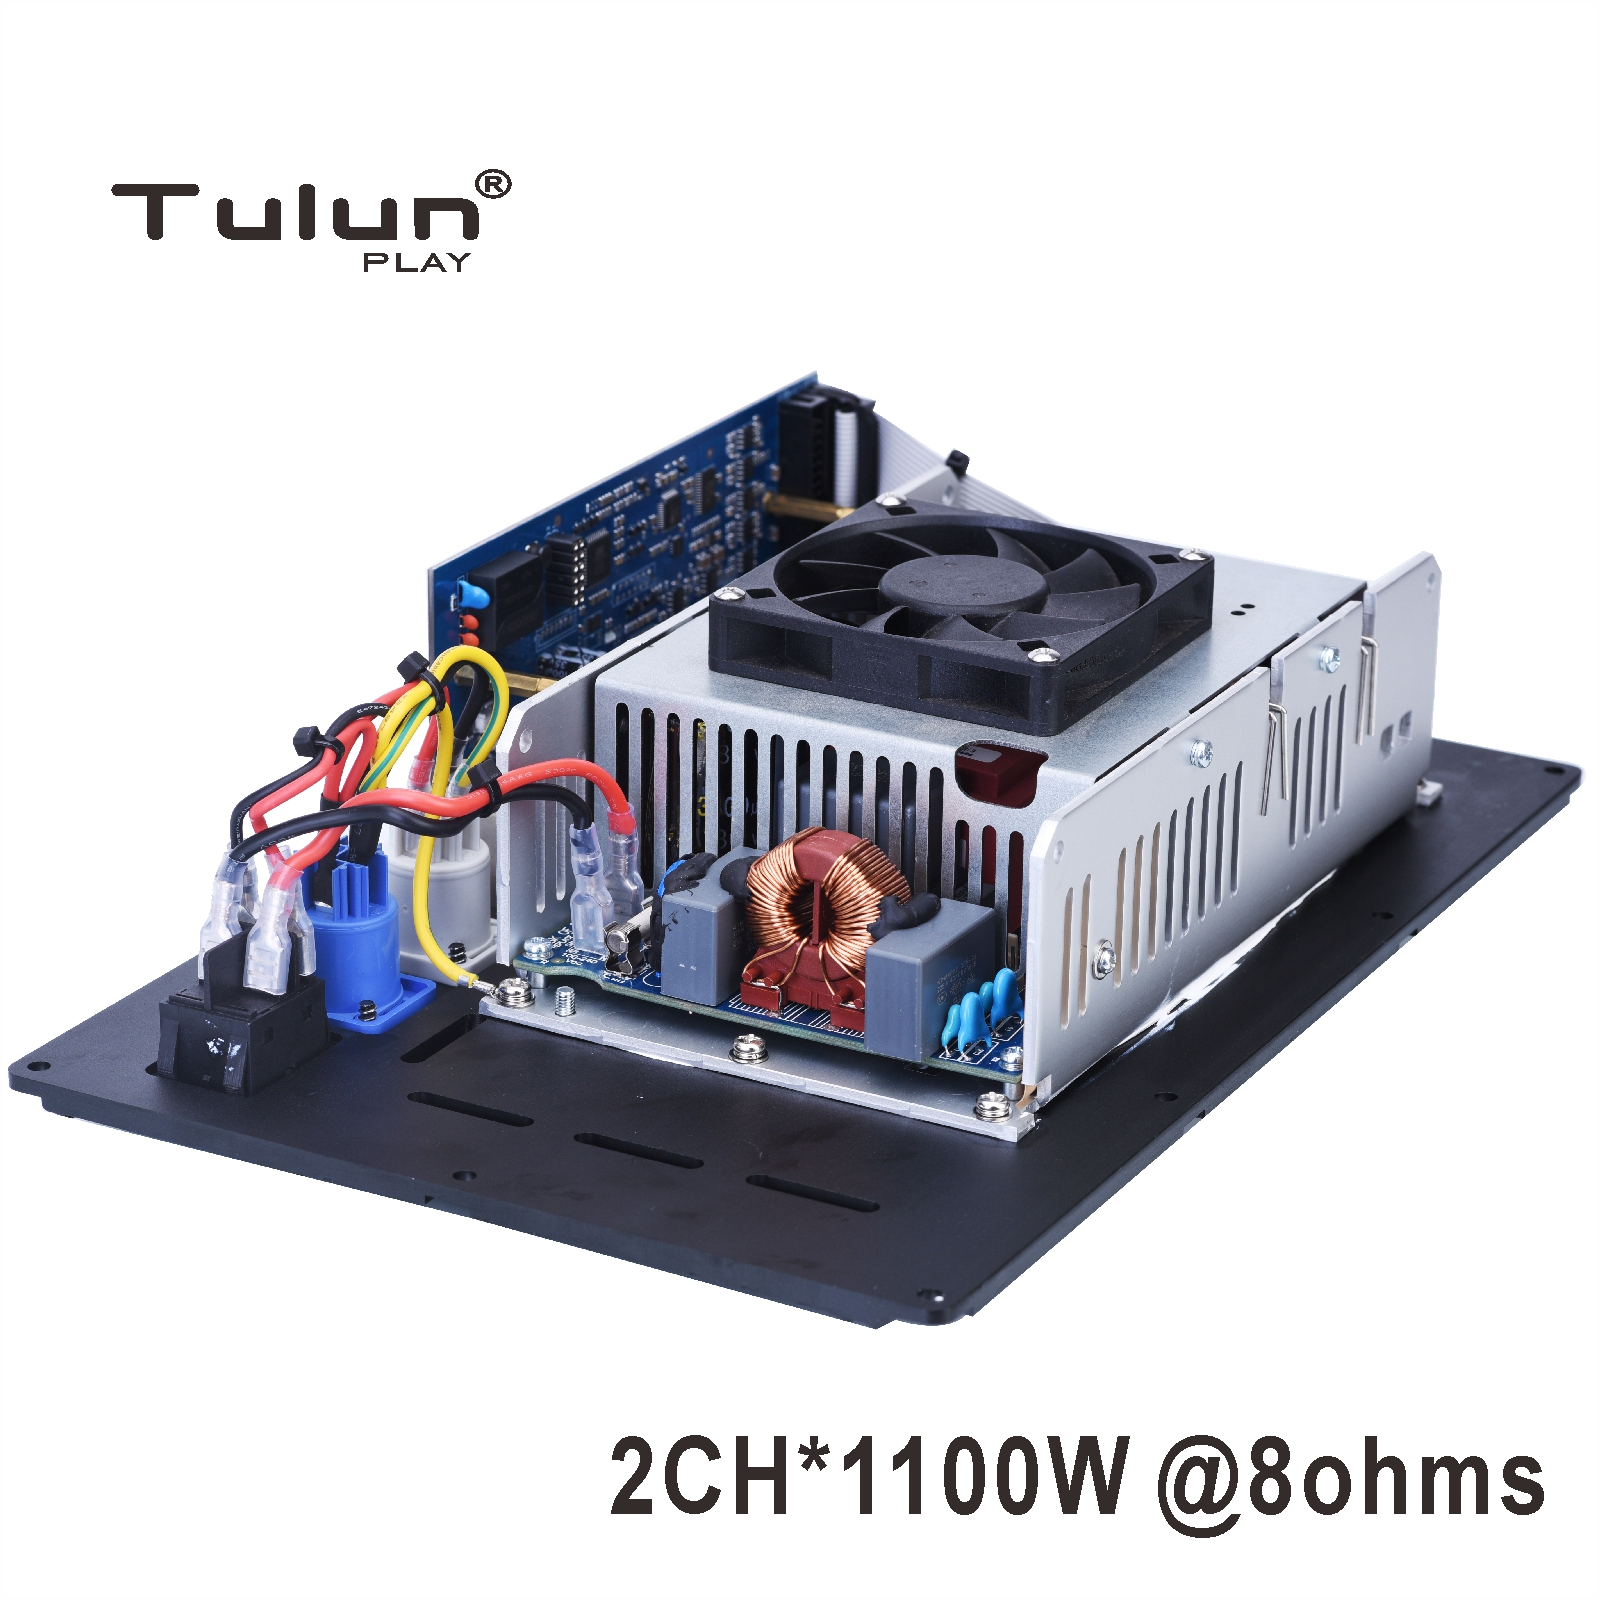 2 Channel 1100W@ 8ohm subwoofer Amplifier module plate DSP Class <strong>D</strong> amp module powered subwoofer Tulun Play AM3002